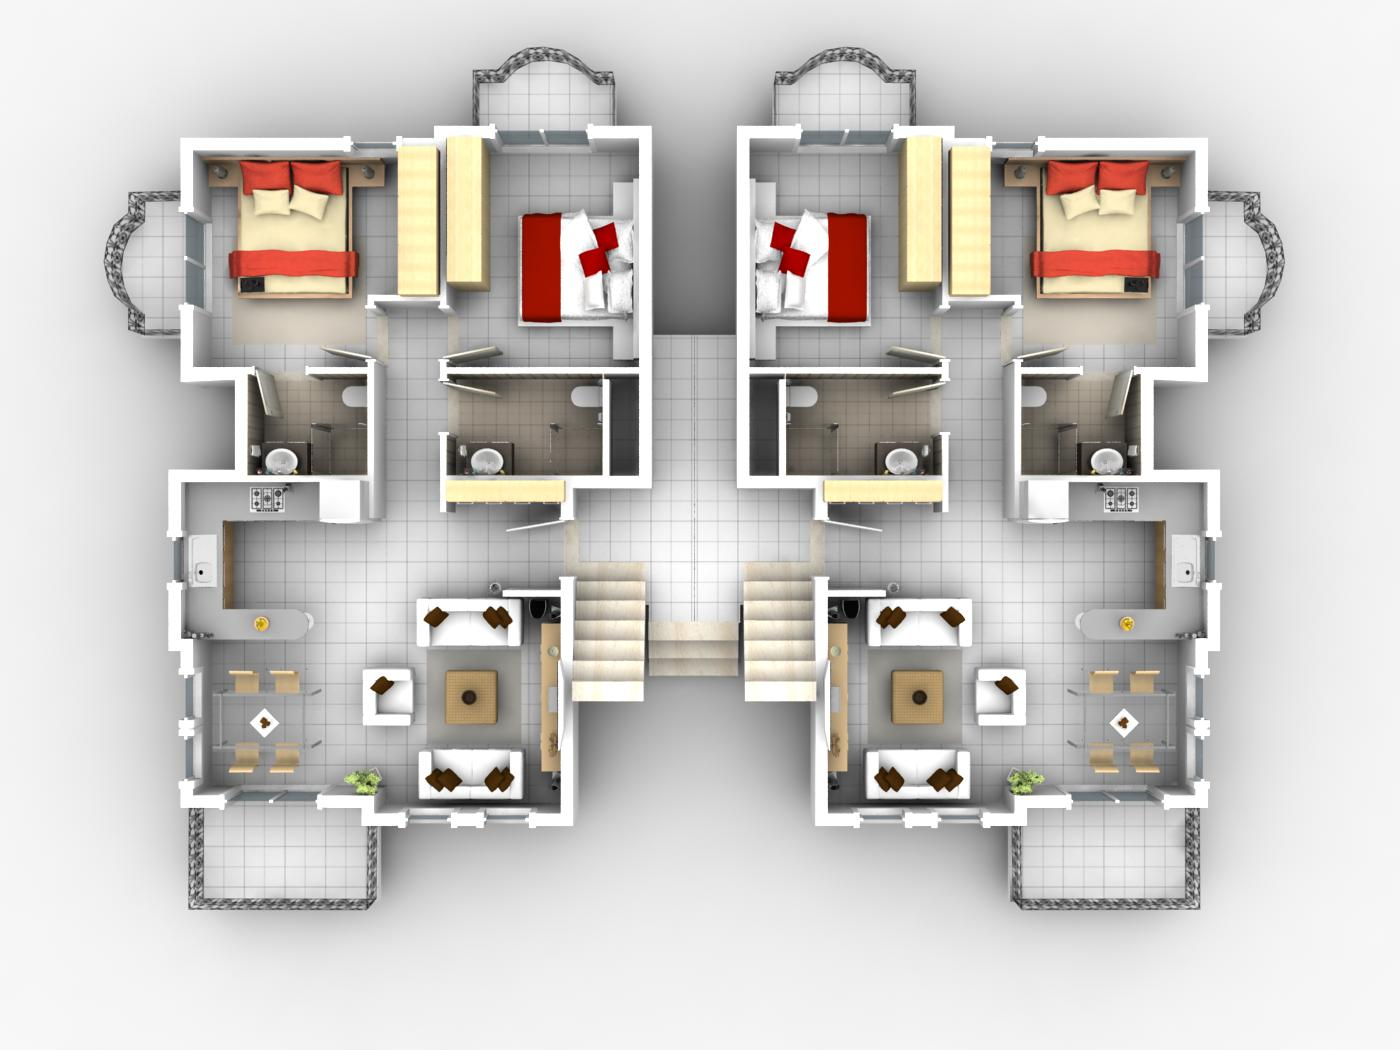 3 bedroom european apartment floor plans bedroom House plan software